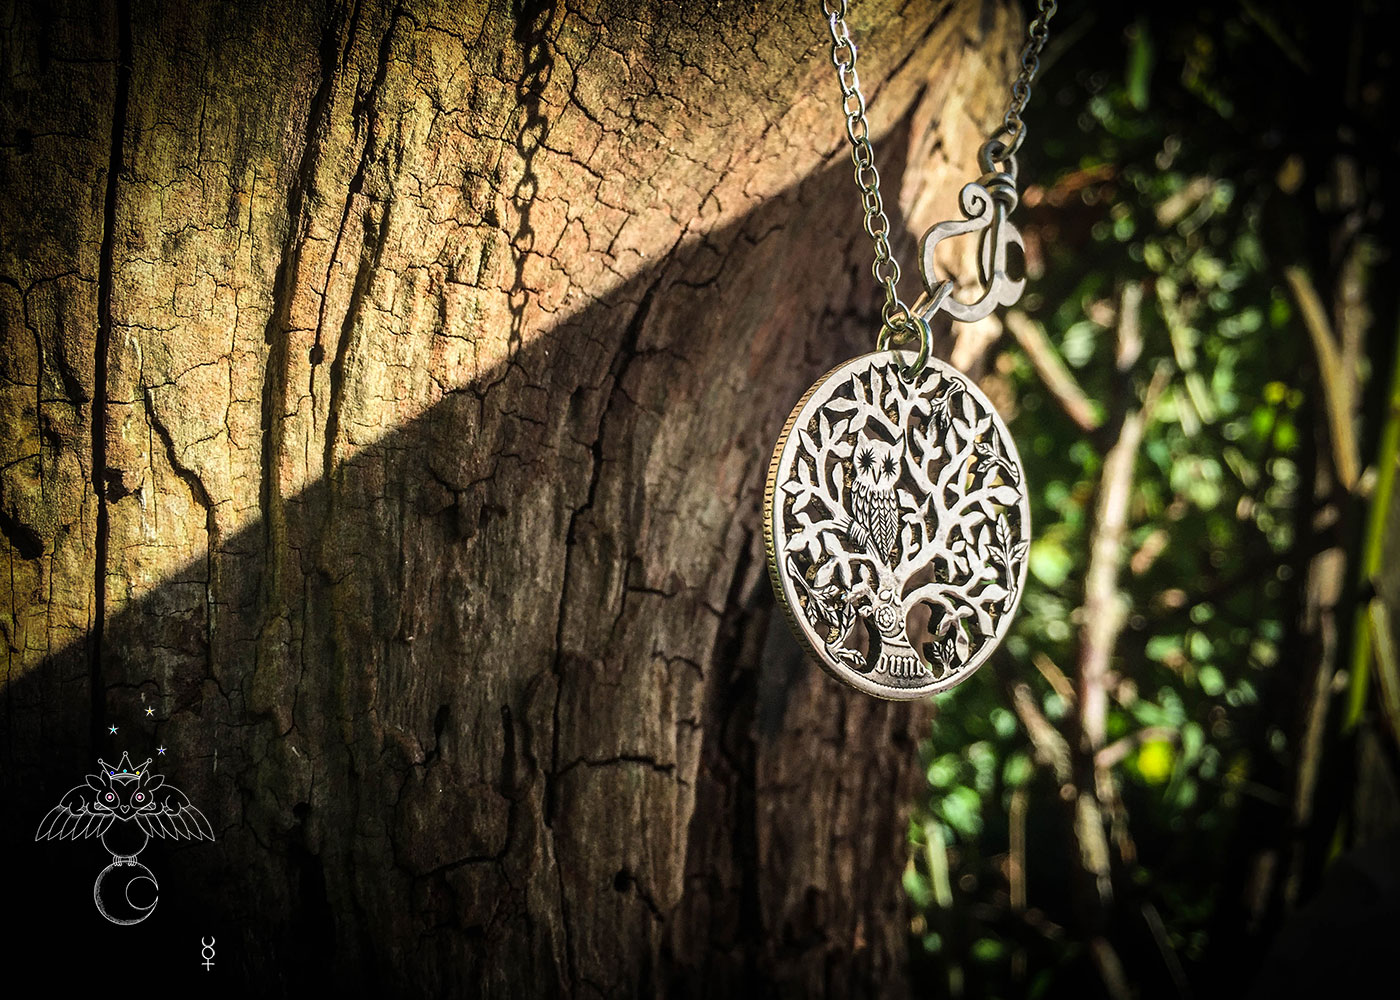 Tree of life silver coin necklace handcrafted and recycled ethical jewellery created at an artisan jewellery studio workshop in Cambridge, England. Eco-conscious, green and eco-friendly jewellery.